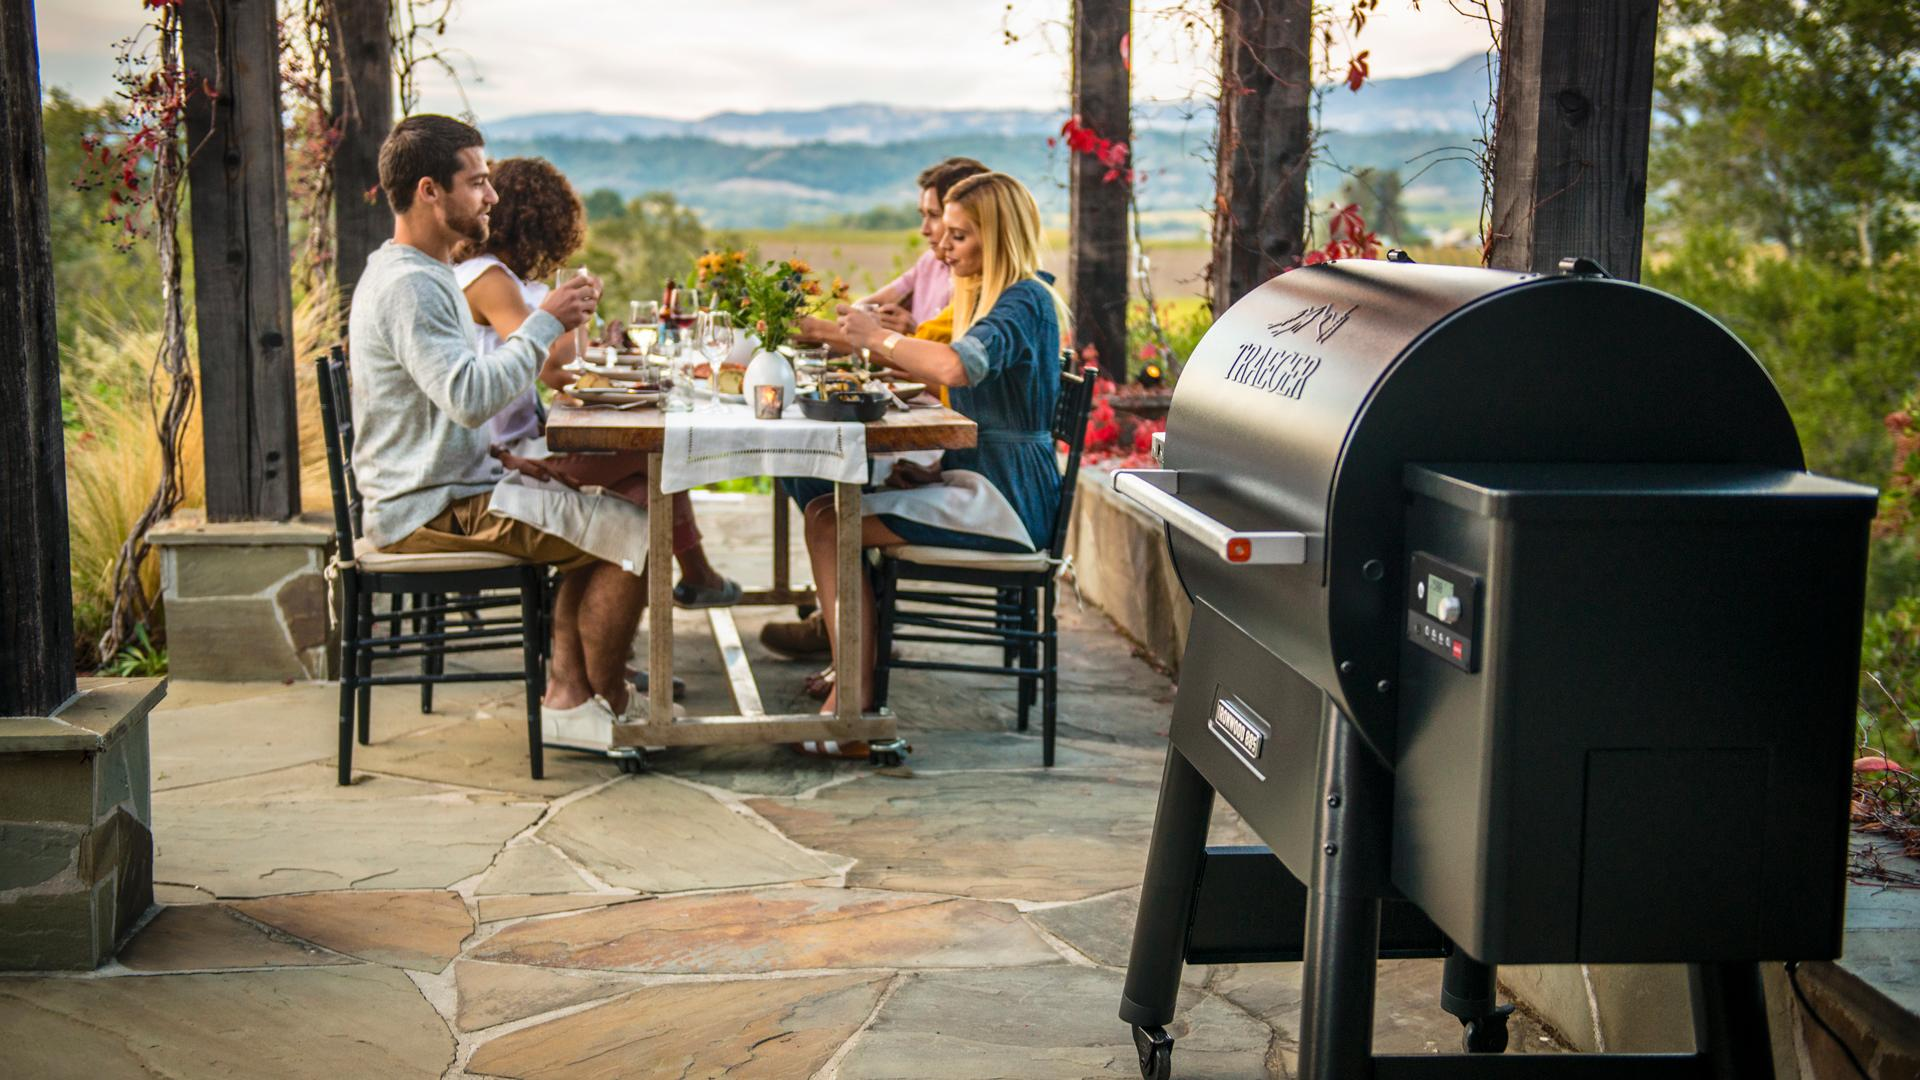 A group of people dine next to a Traeger grill